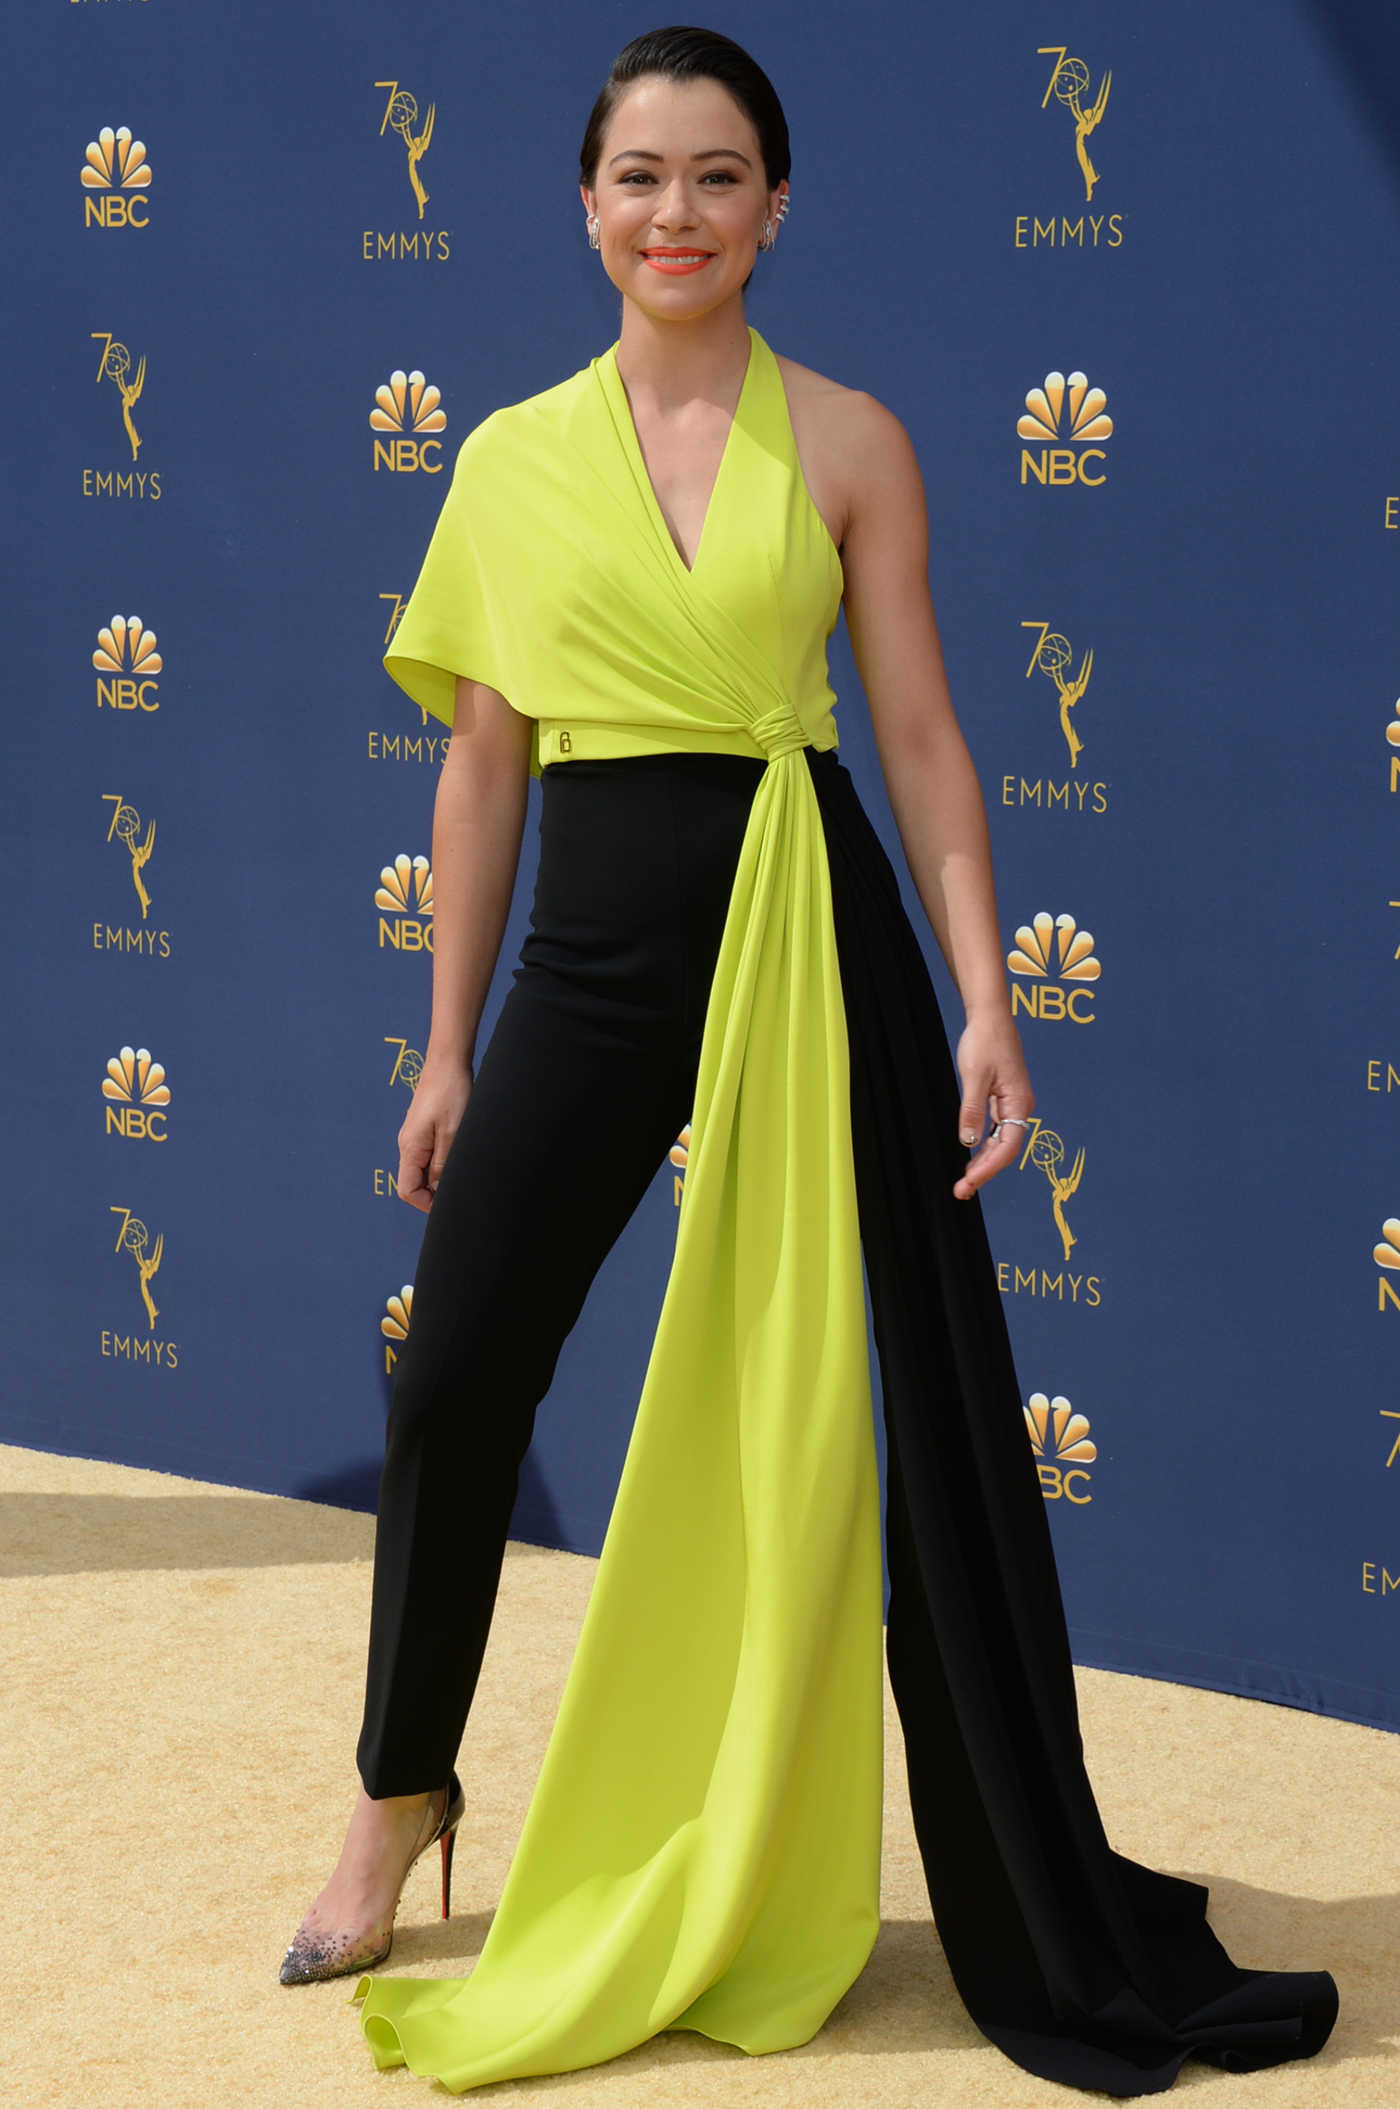 Tatiana Maslany at the 70th Primetime Emmy Awards in LA 09/17/2018